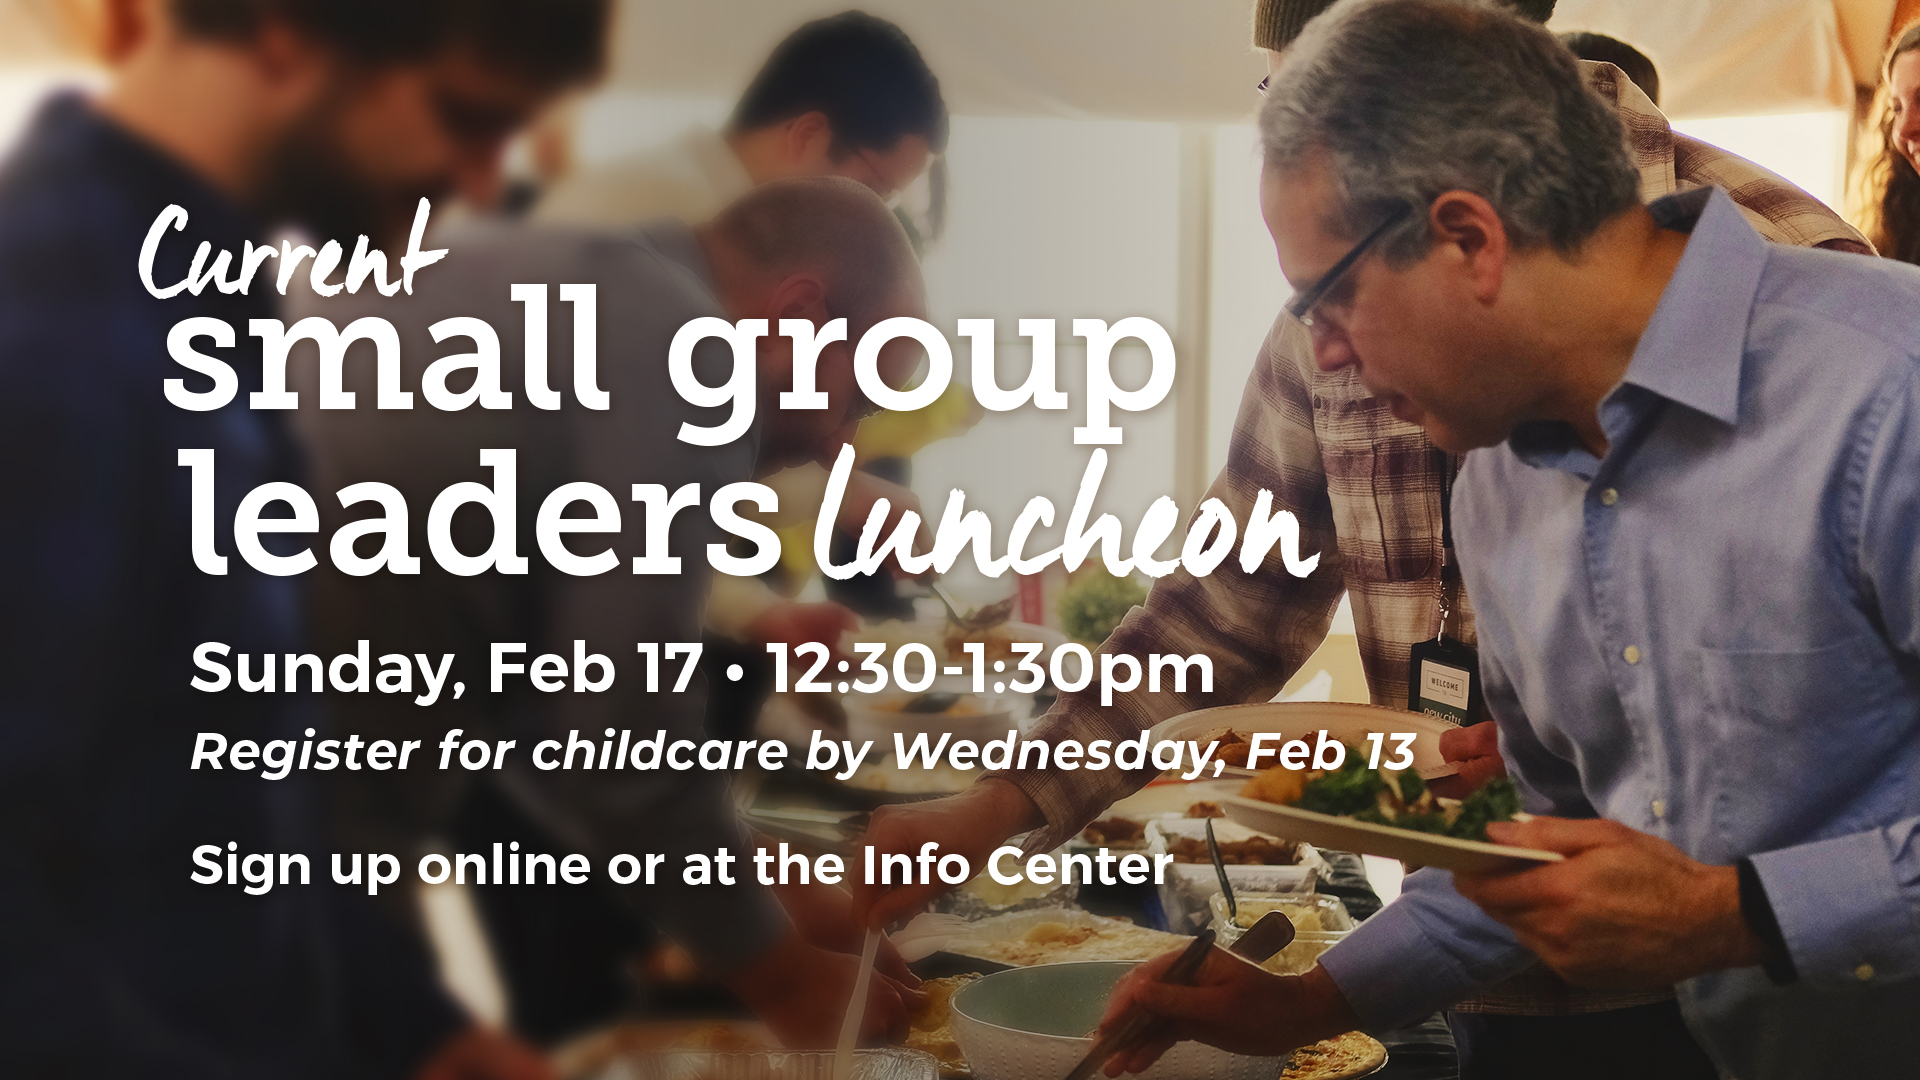 Halfmoon Current Small Group Leaders Luncheon